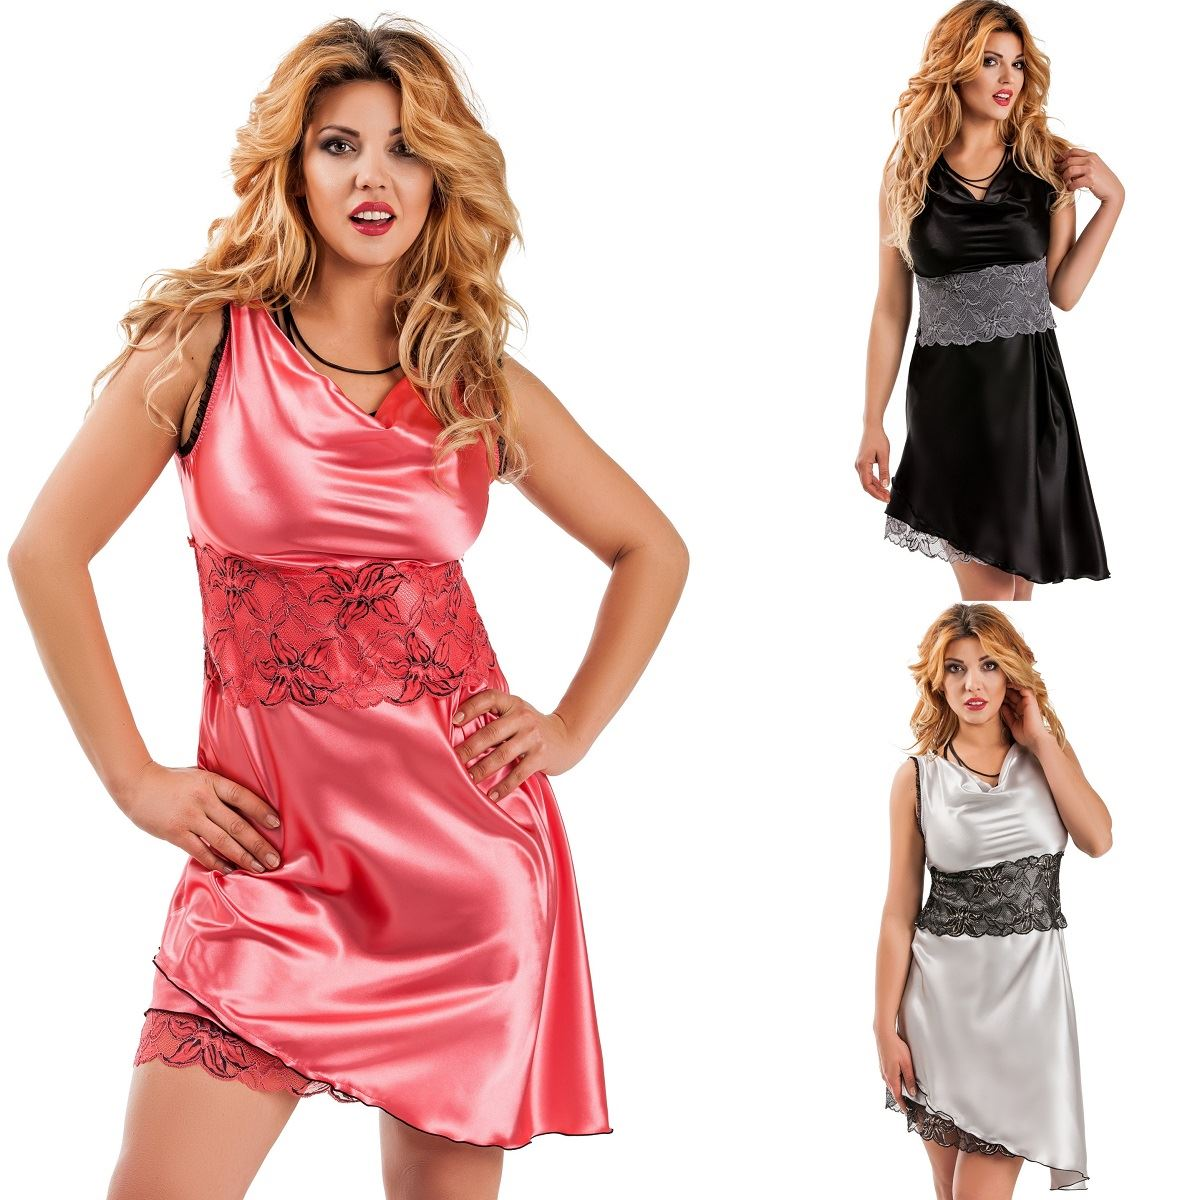 Plus Size Dresses for Women: Size 10 to 32 | Addition Elle